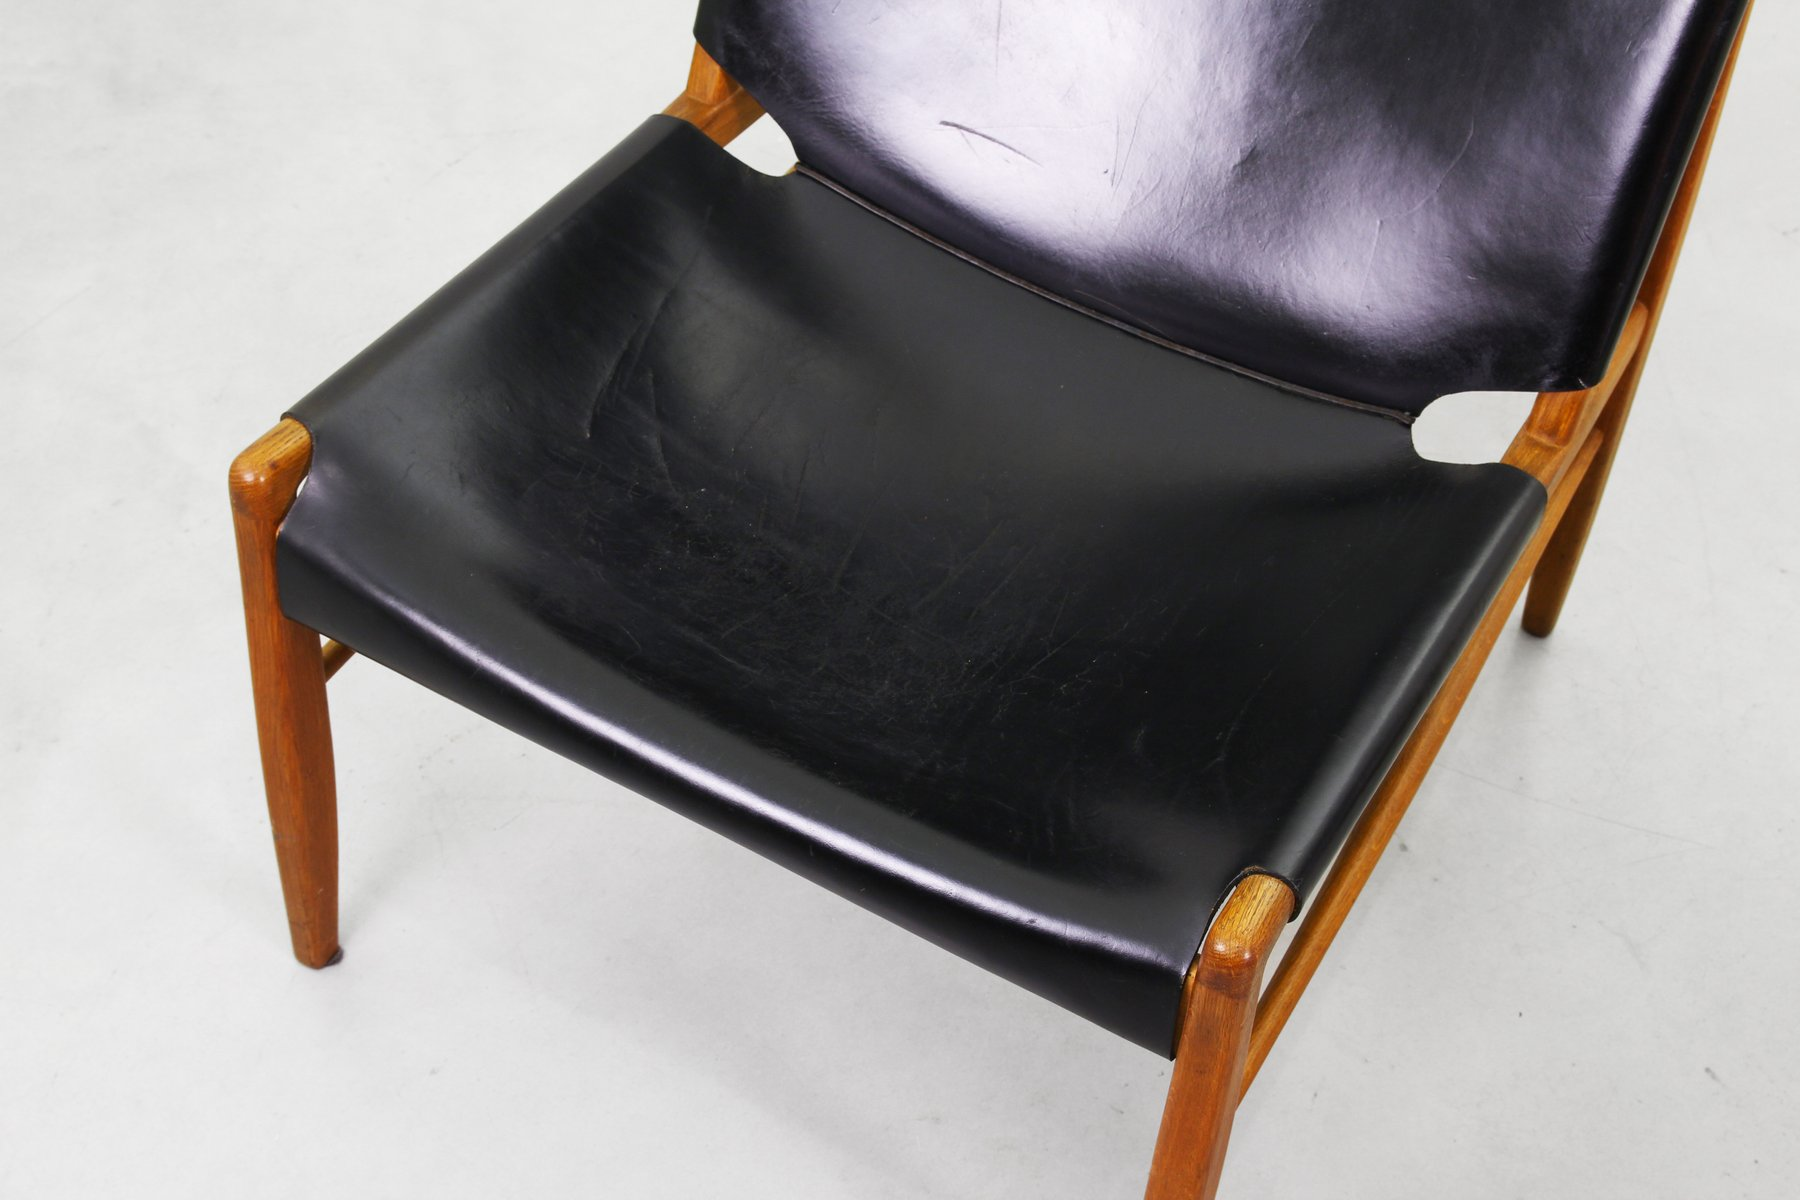 Lutz Möbel lounge chairs by franz xaver lutz for wk möbel 1958 set of 2 for sale at pamono